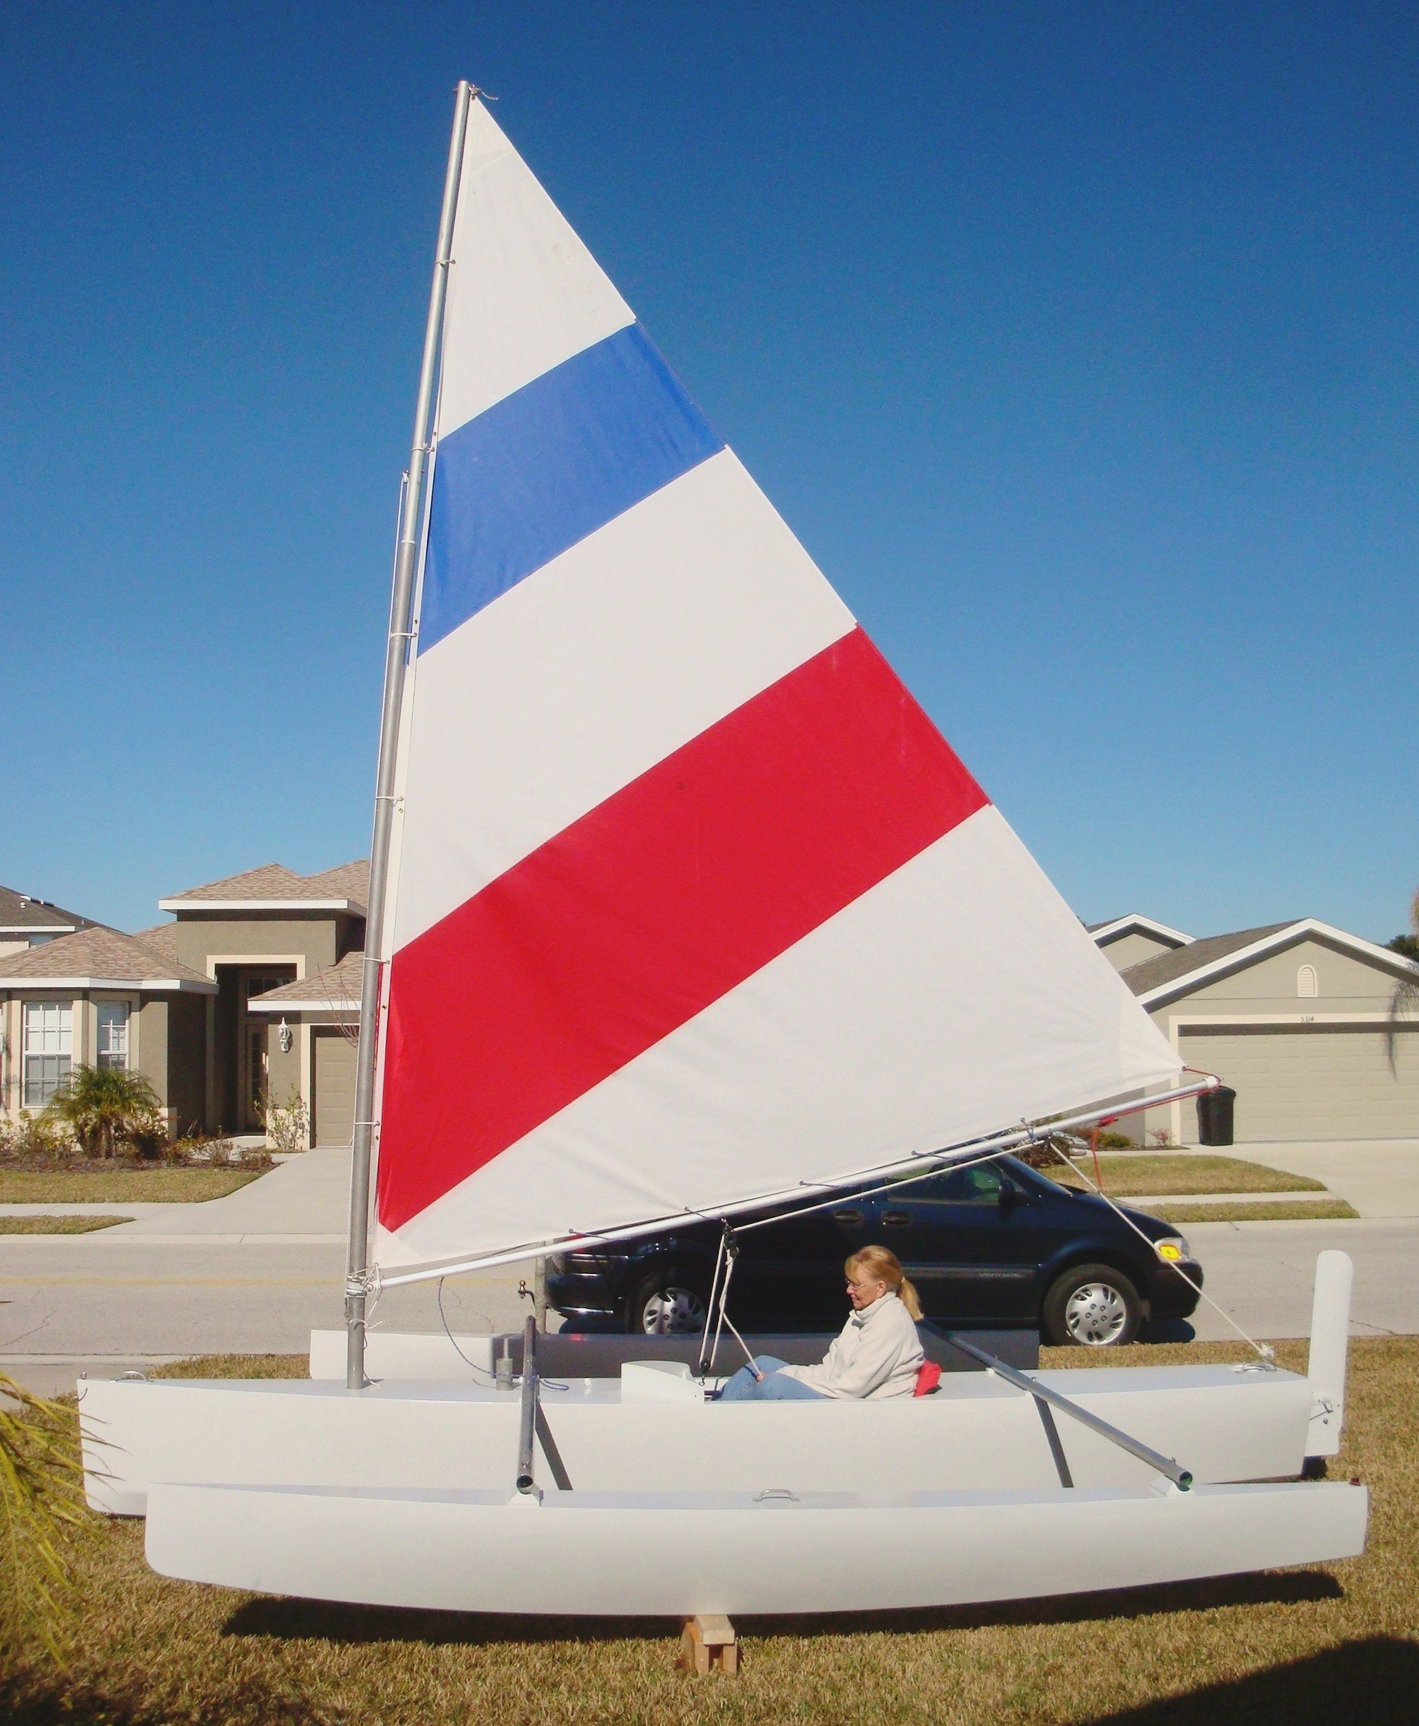 Pics Photos - Diy Trimaran Sailboat Plans